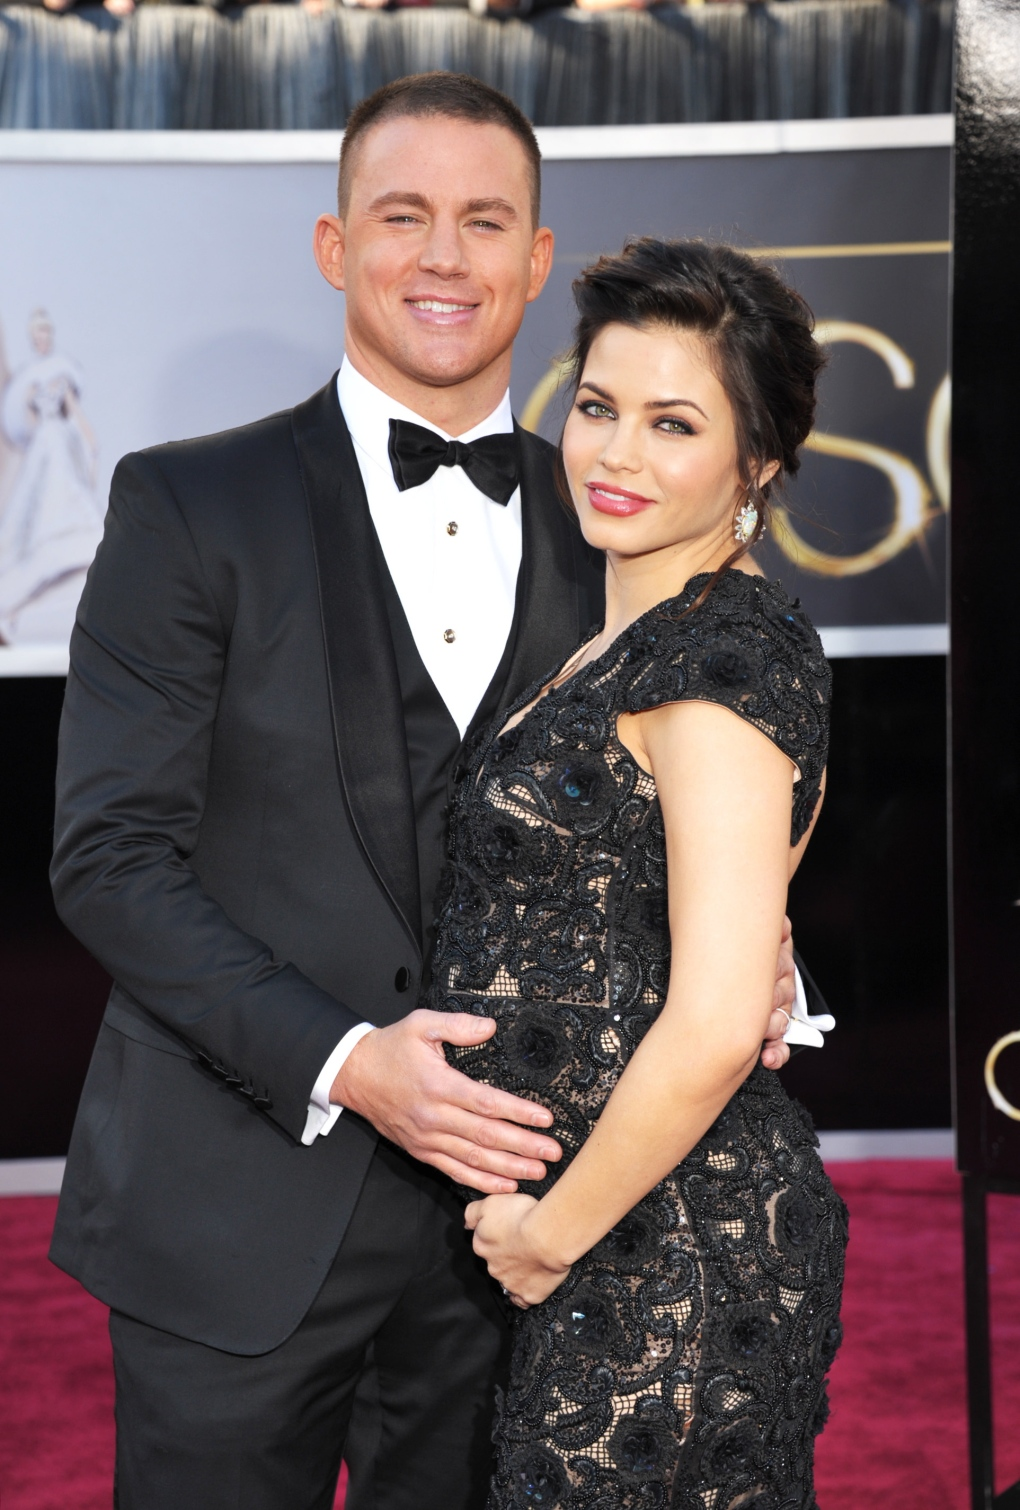 84_Oscar_Red_Carpet_Channing Tatum and wife.jpg